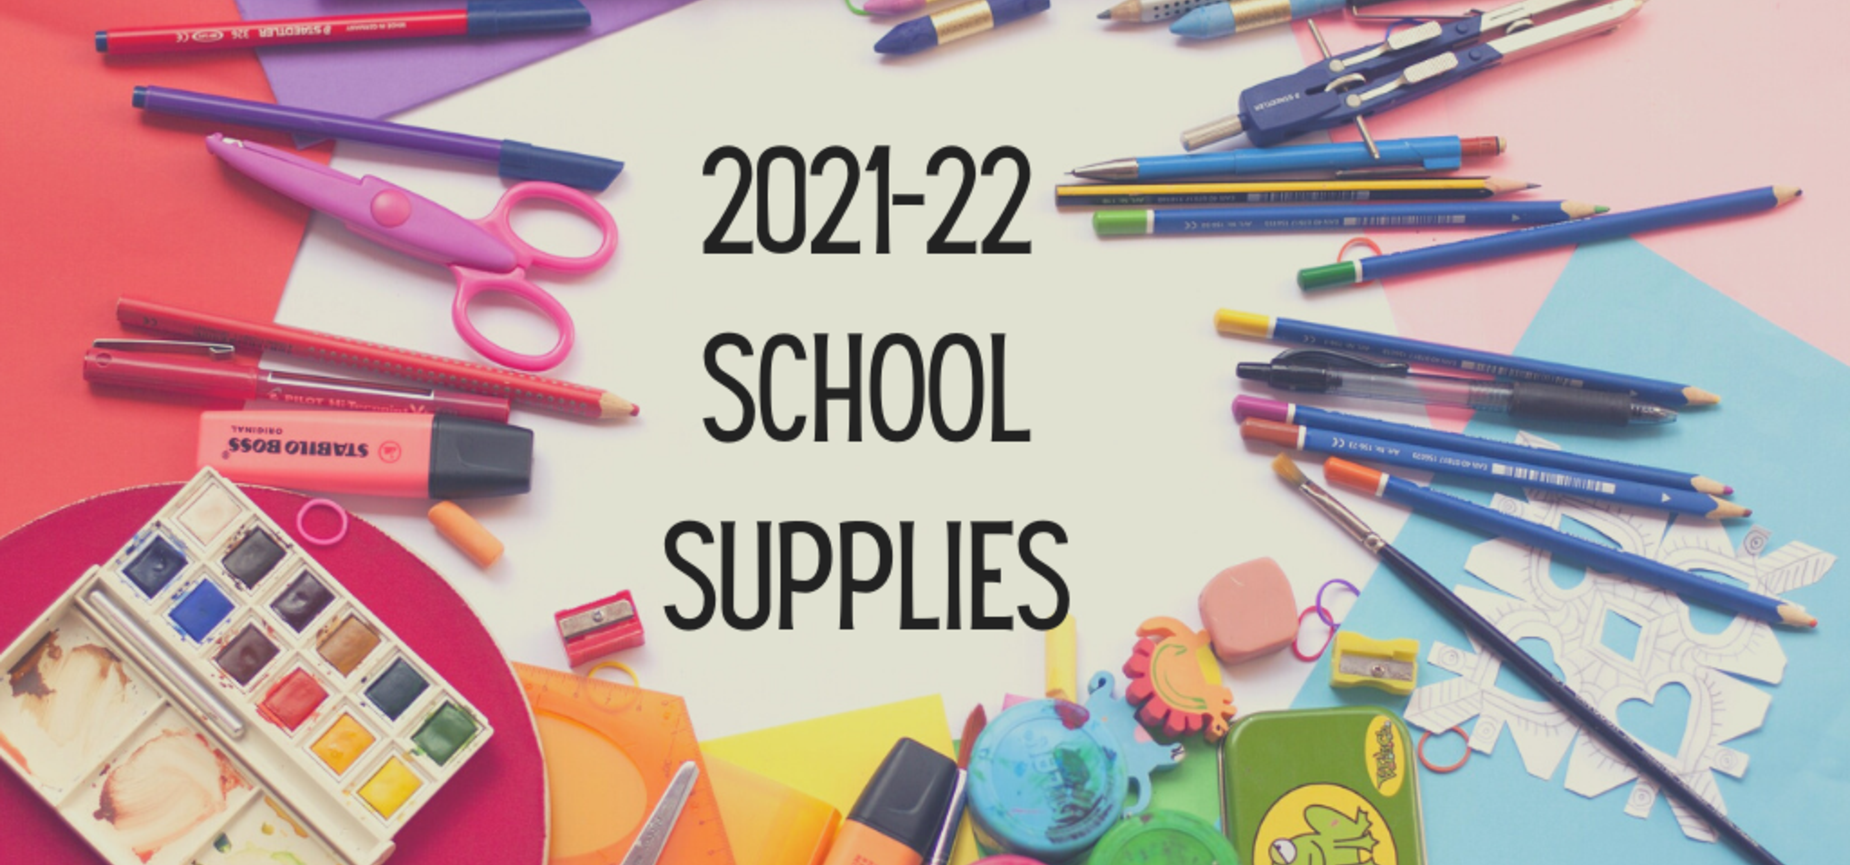 School supplies on a multicolored background